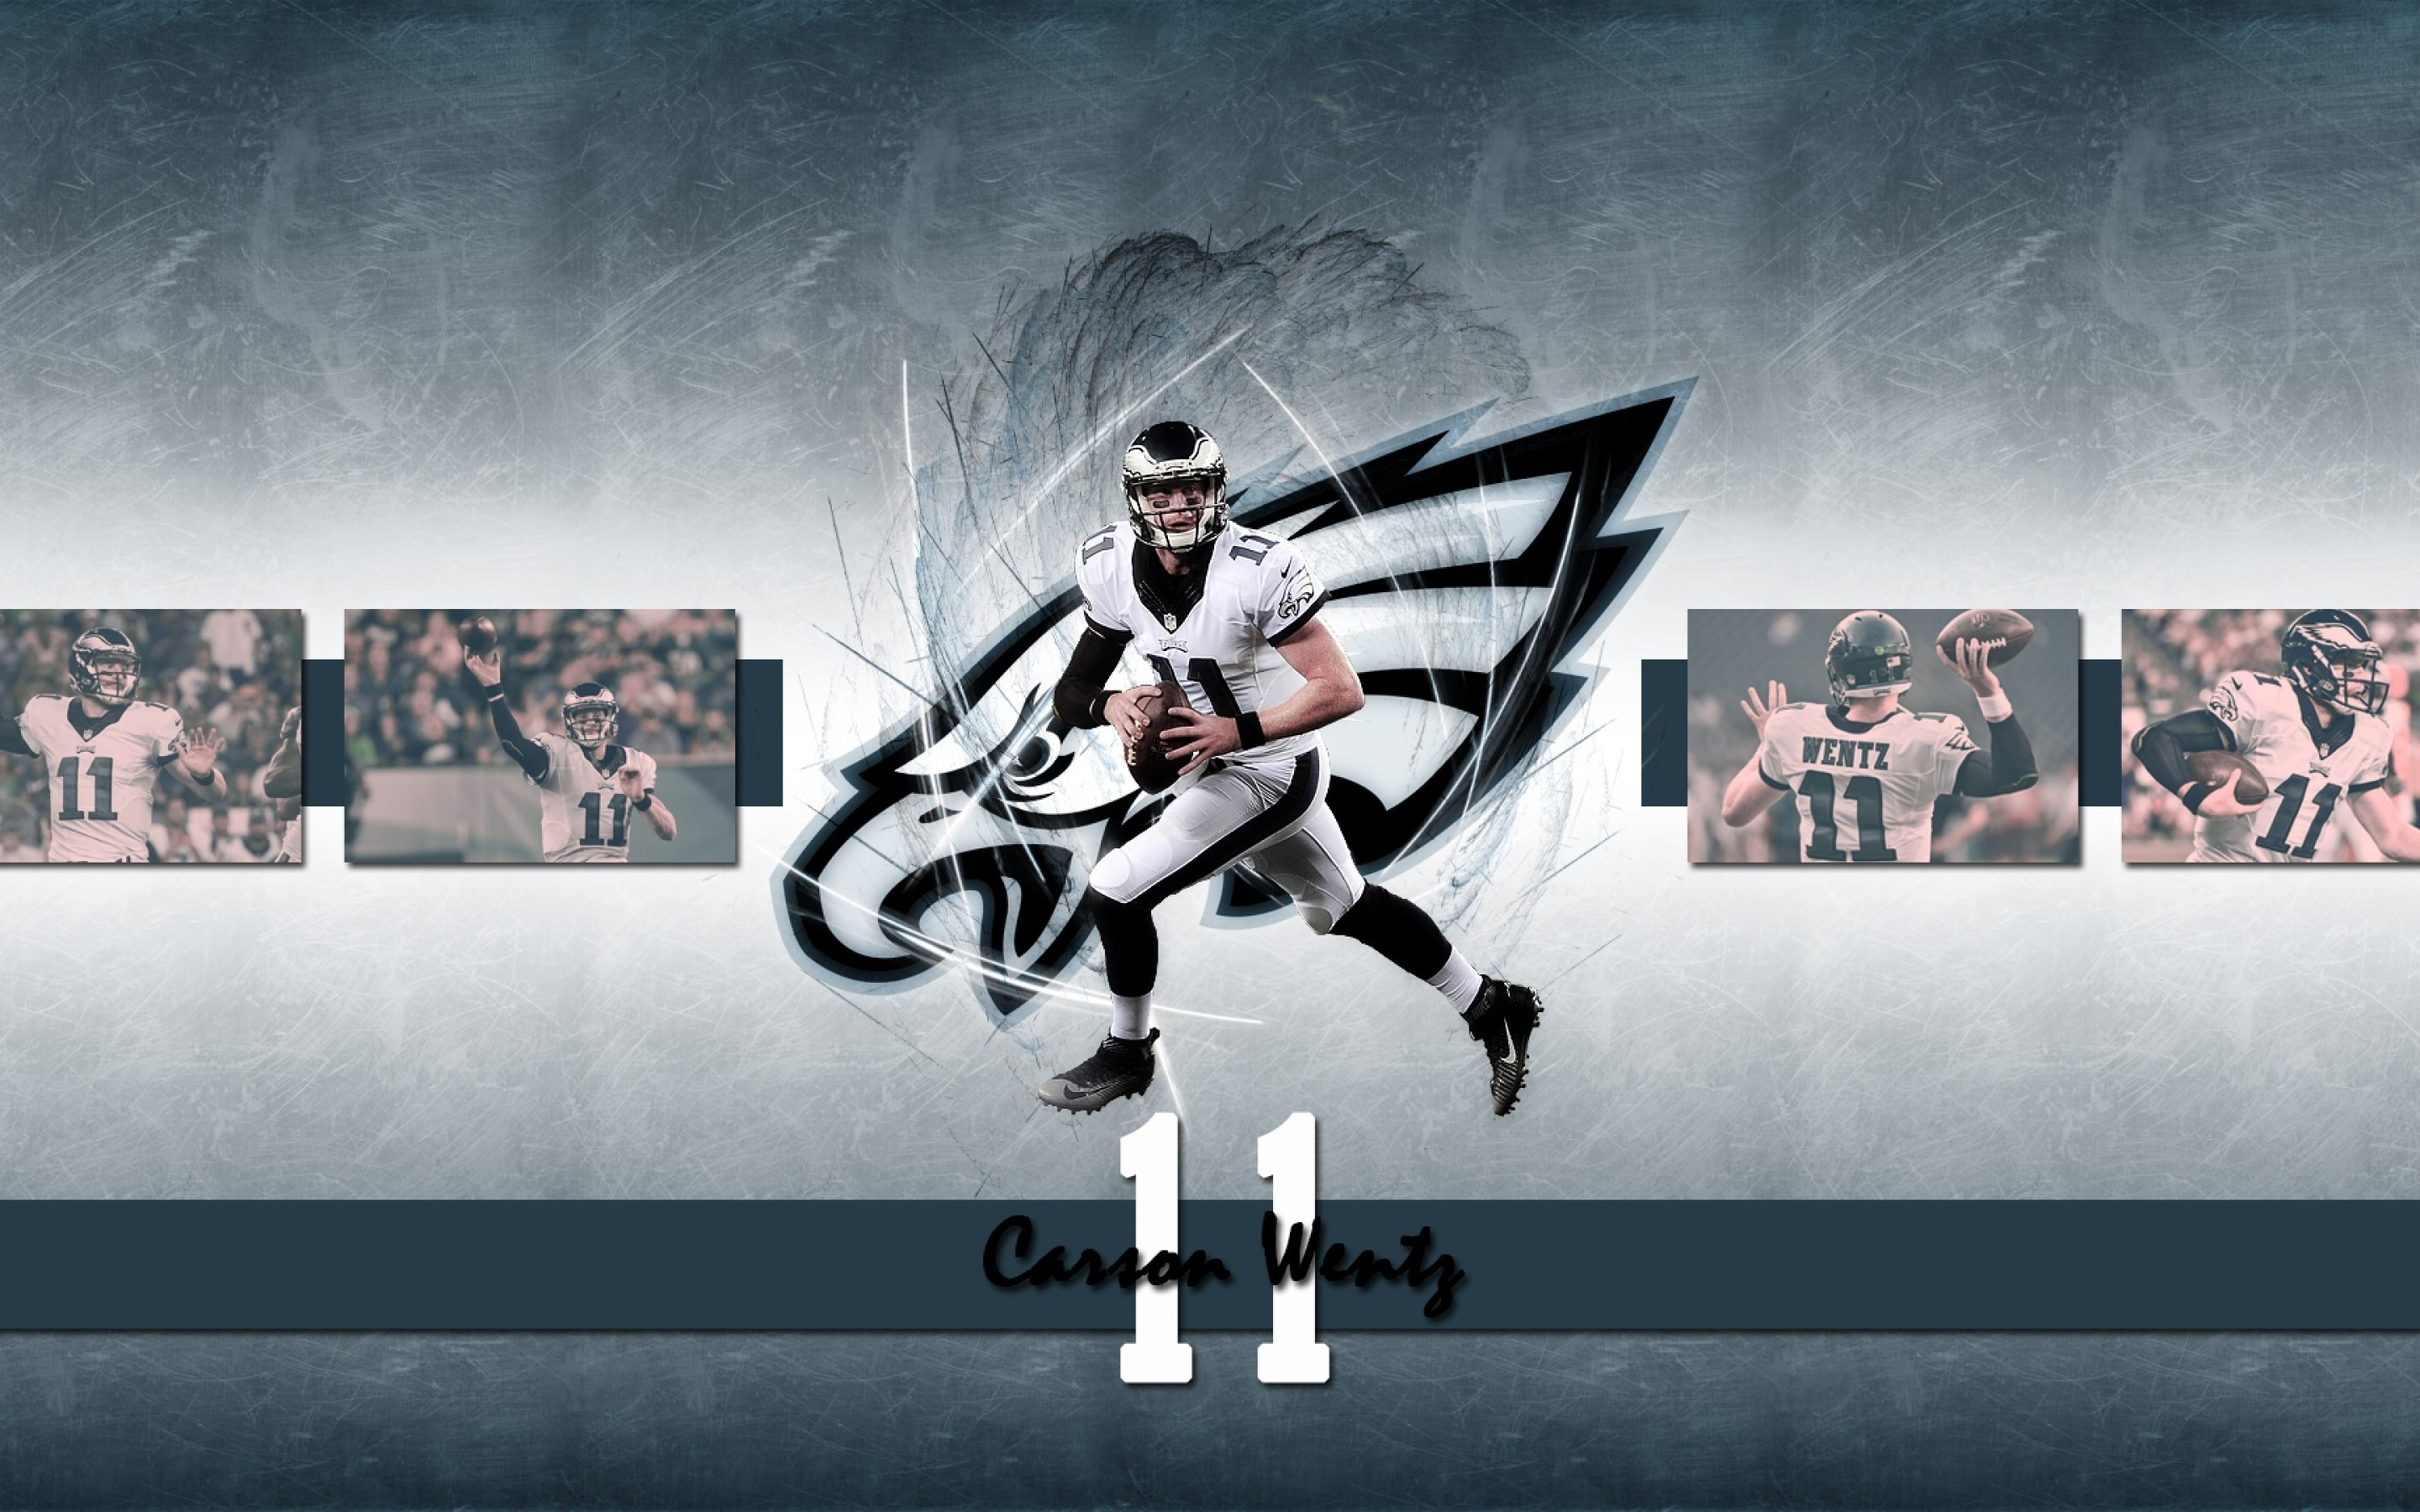 Download 2880x1800 Carson Wentz American Football Wallpapers for 2880x1800